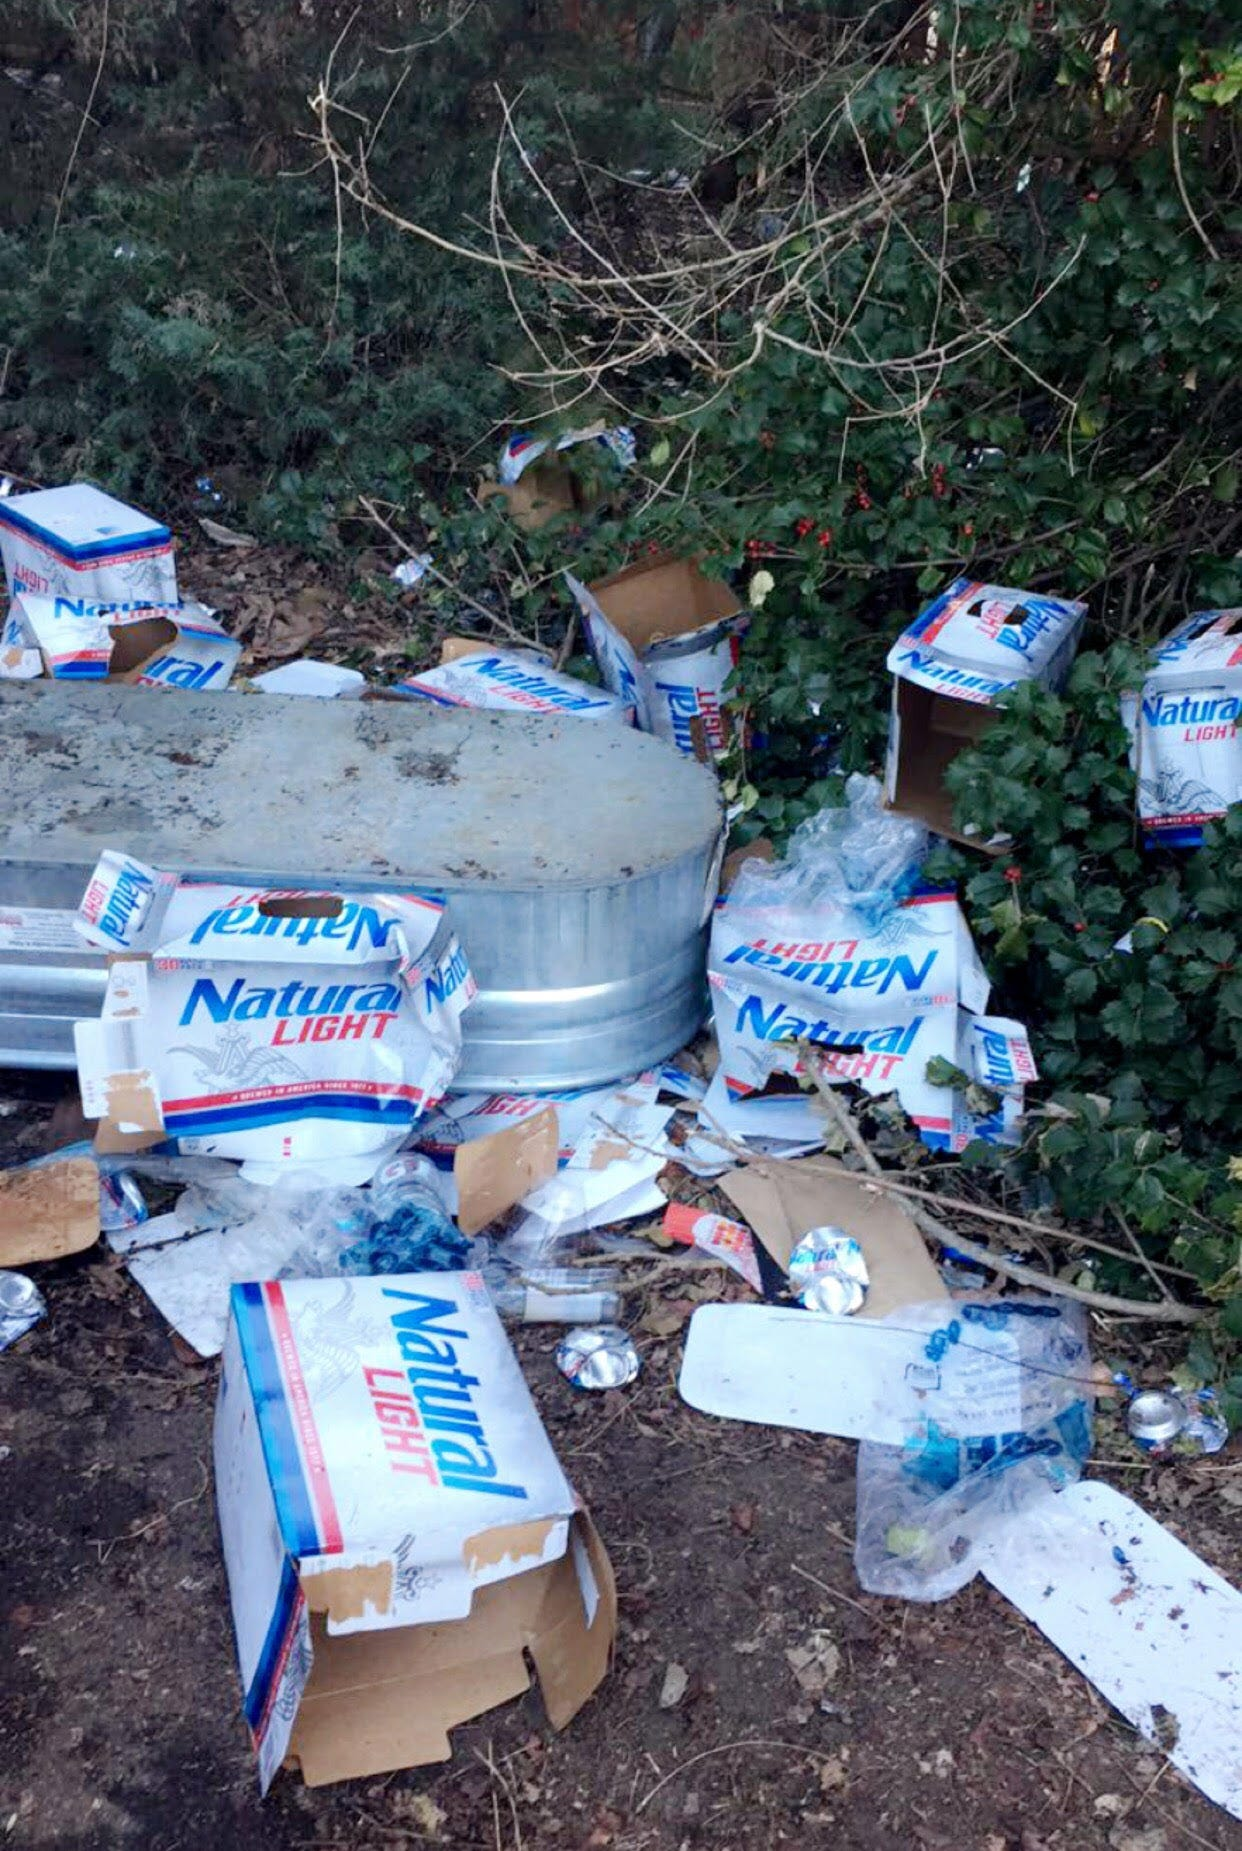 """In the ordinance, excessive littering is defined as """"20 or more items of trash lying on the ground or pavement, including, but not limited to, discarded beverage cans, beverage bottles, beverage cups, and beverage packaging materials."""""""